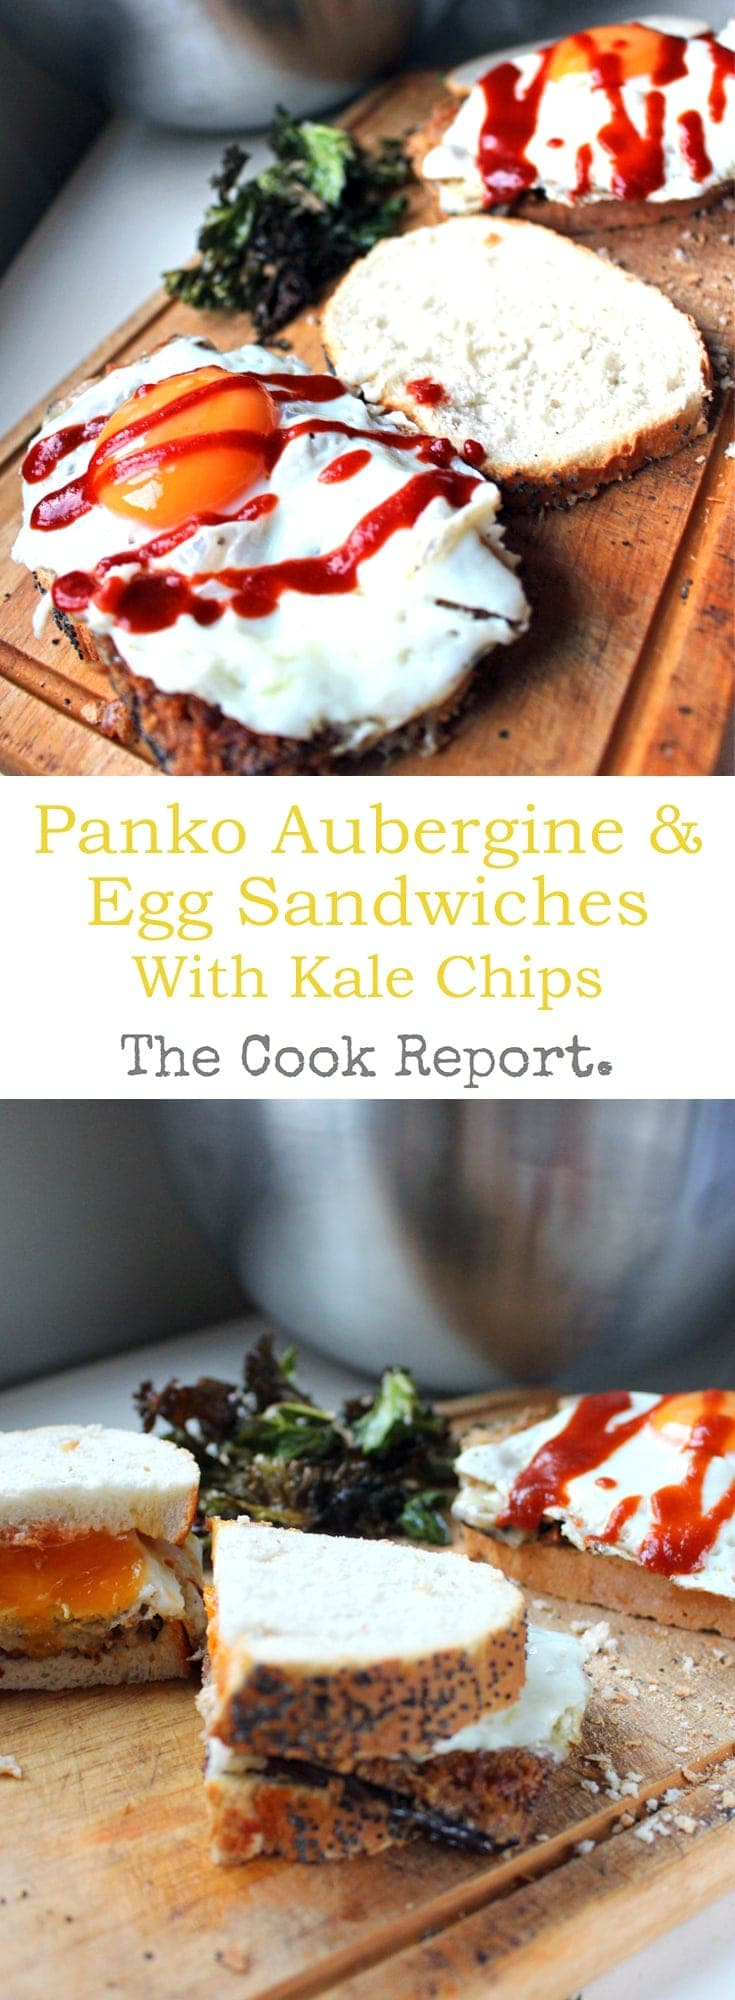 This Panko Aubergine & Egg Sandwich with kale chips is a delicious vegetarian meal which works at any time of day.